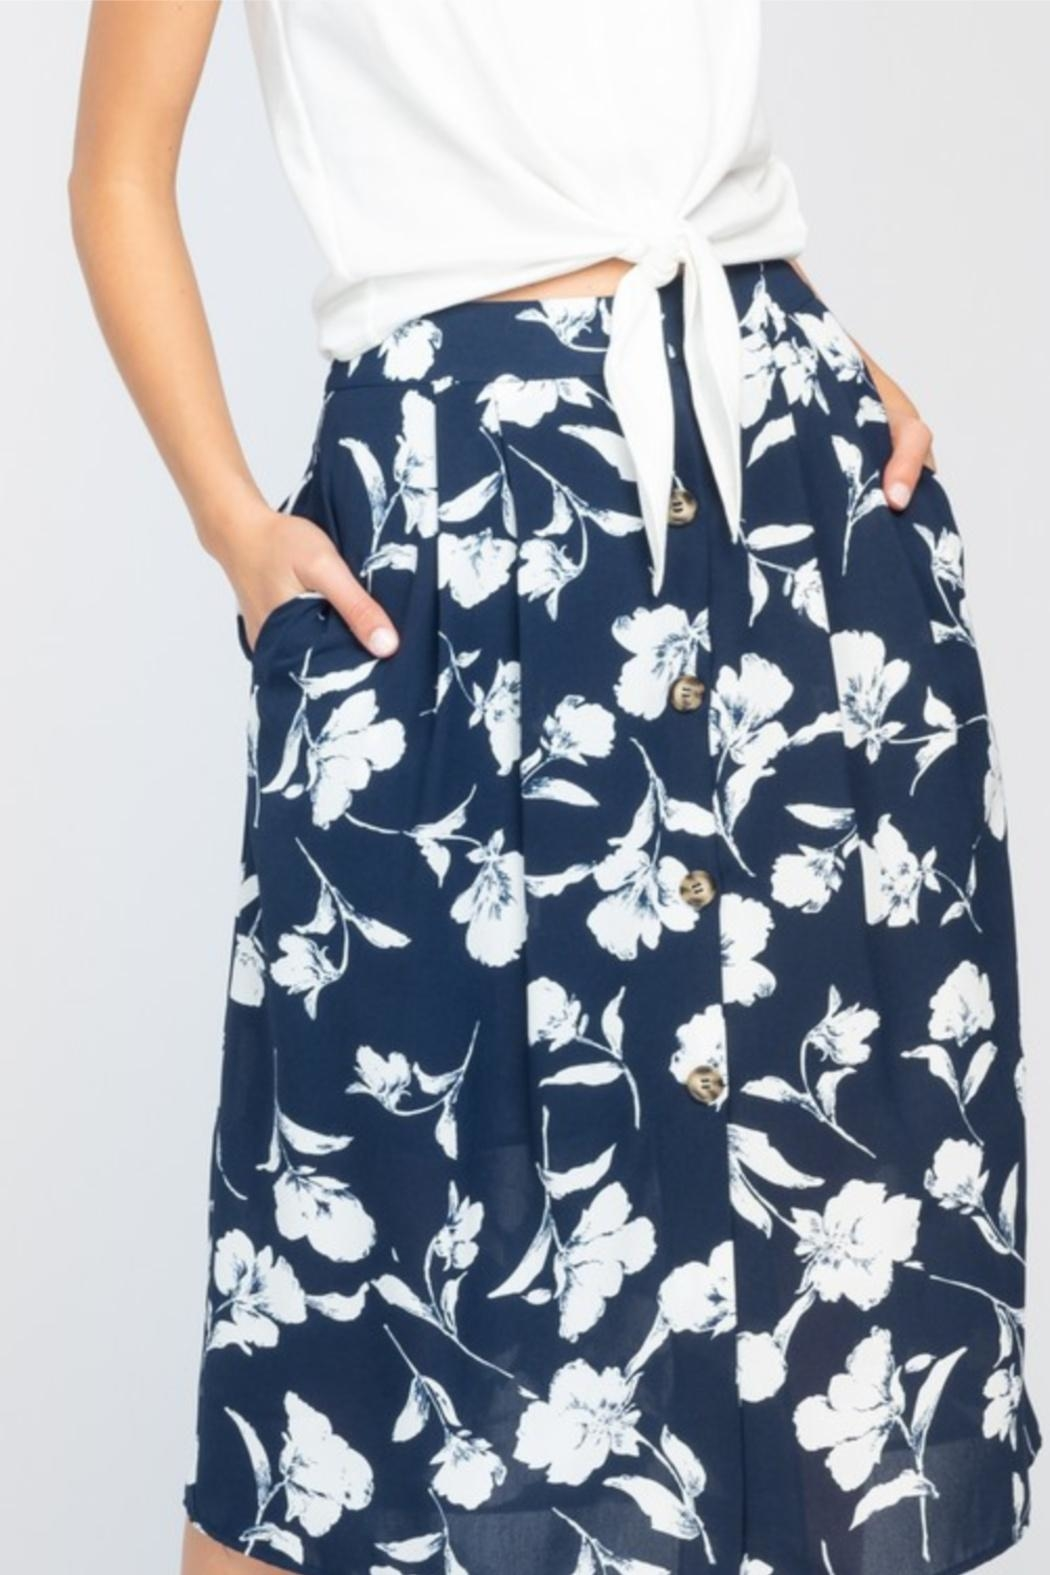 e33d0773ea Everly Printed Floral Skirt from California by Apricot Lane - Folsom ...